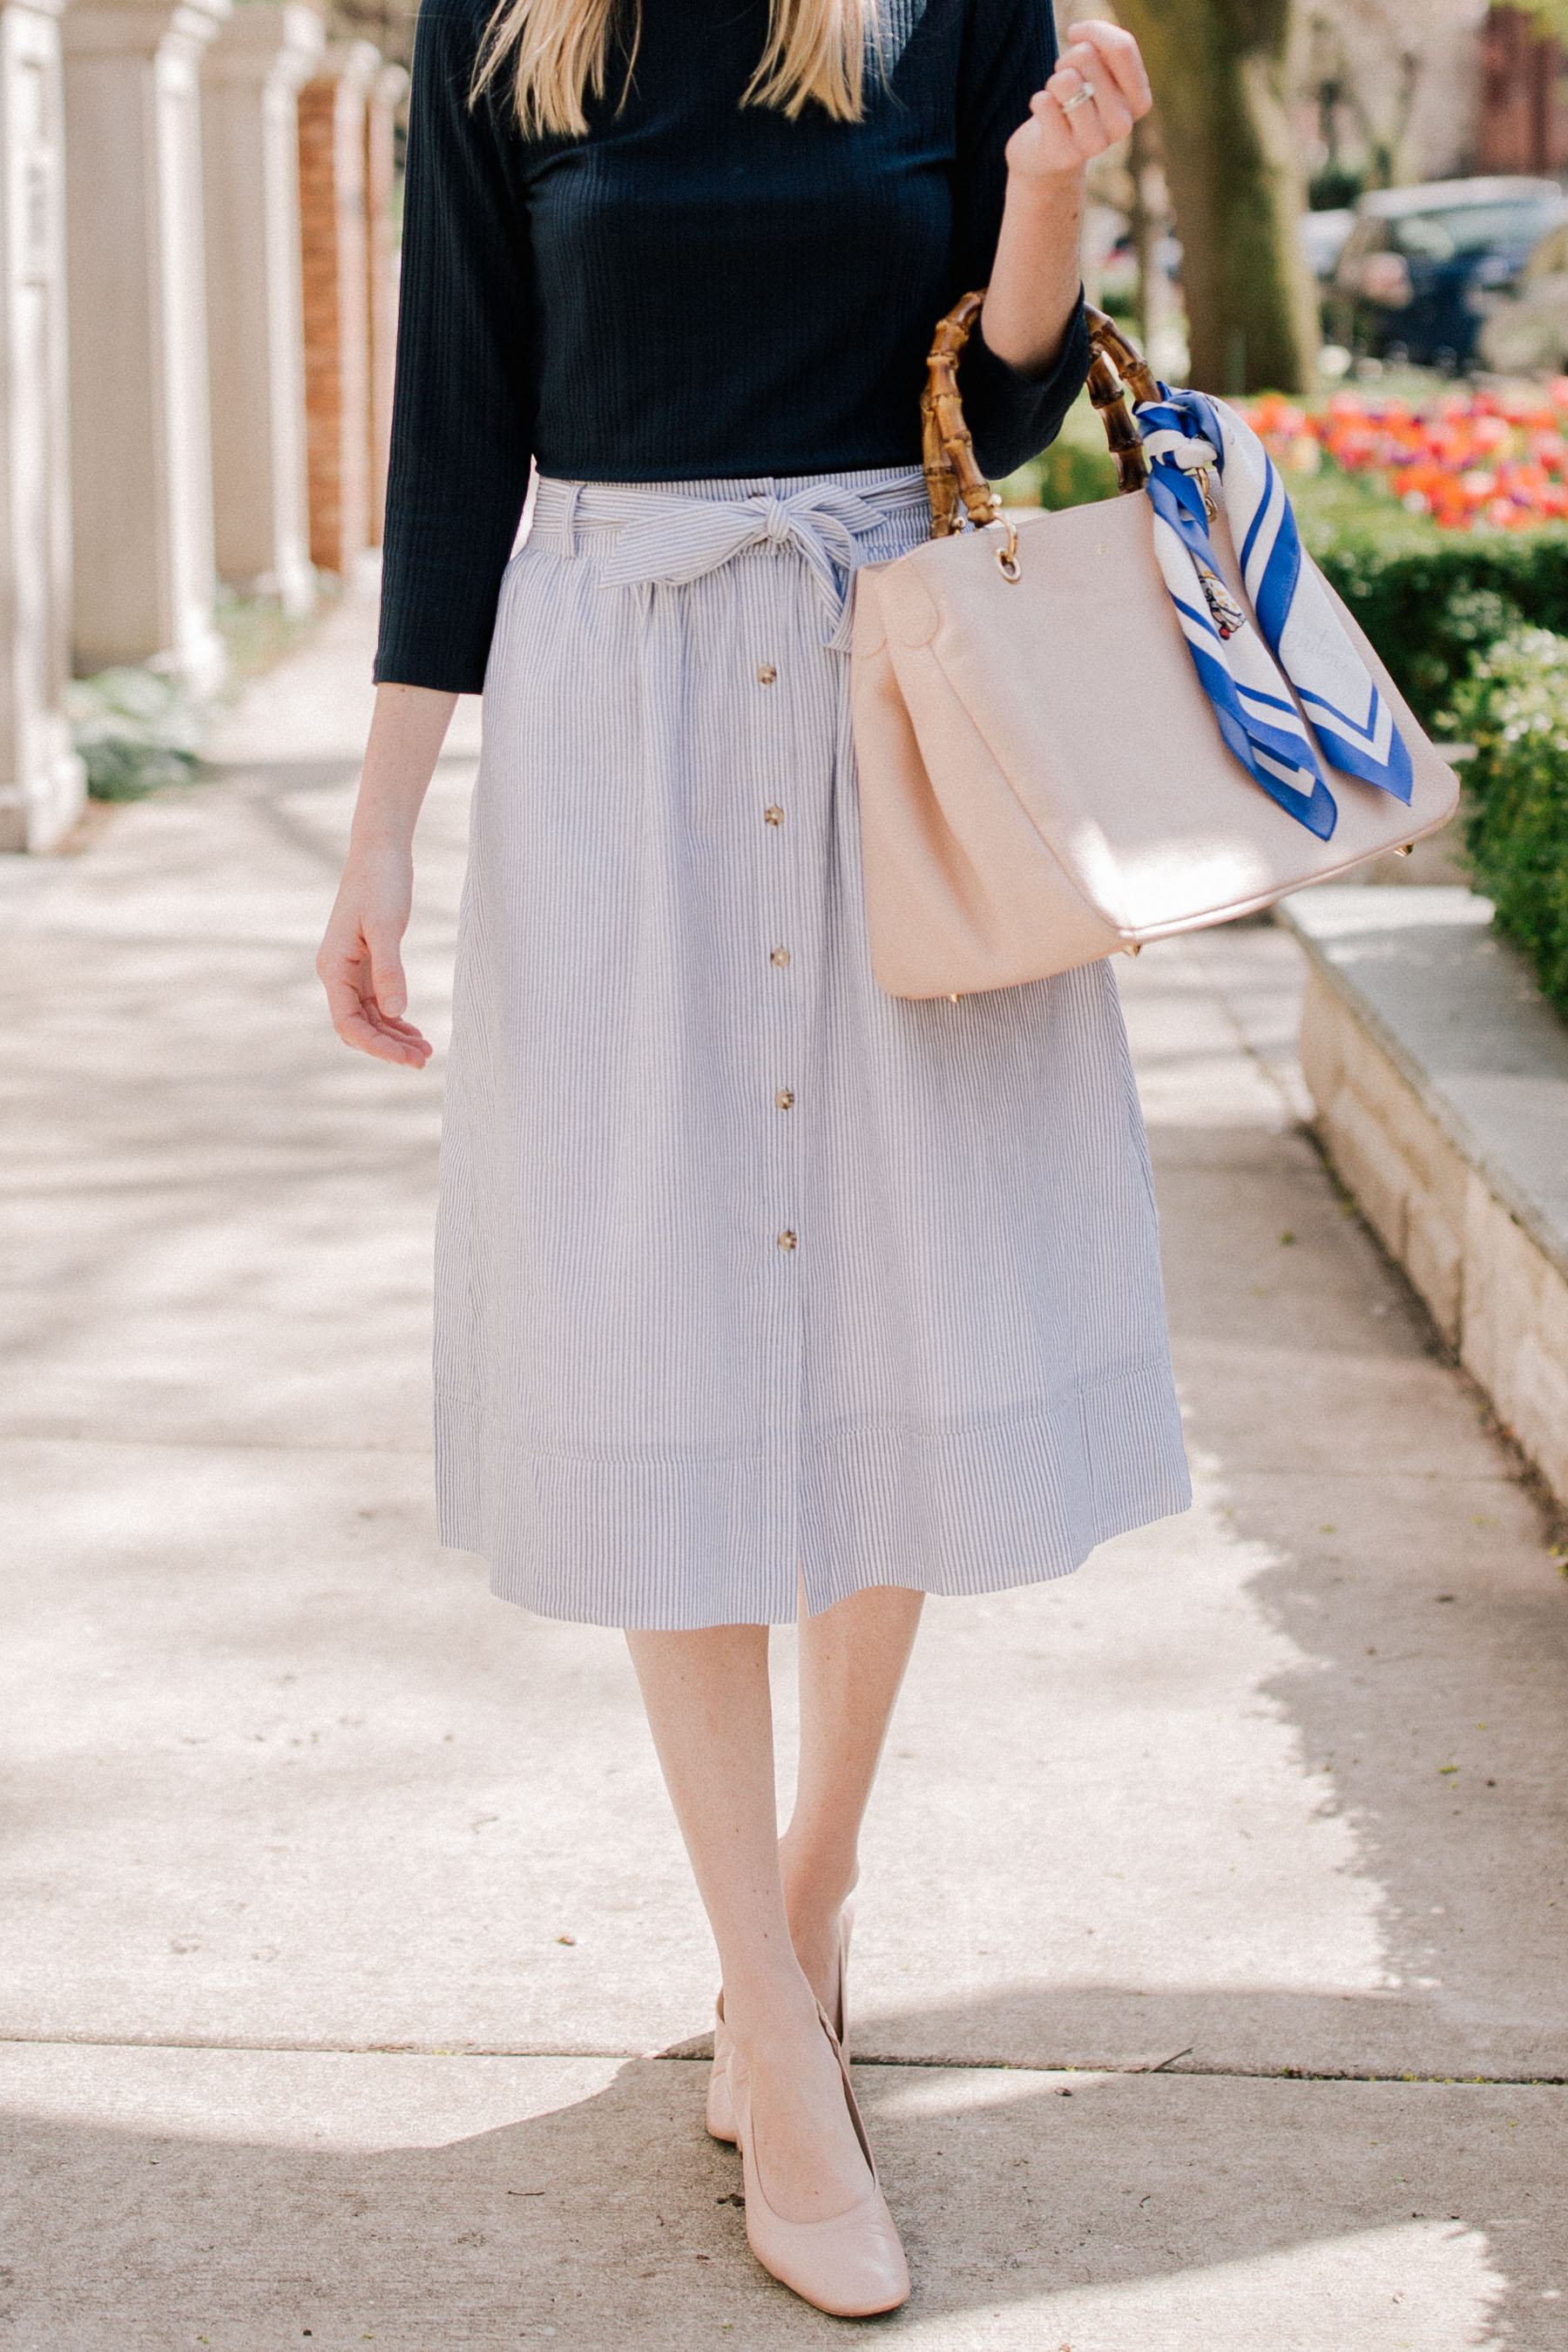 Striped tie front skirt with Everlane Day Heel